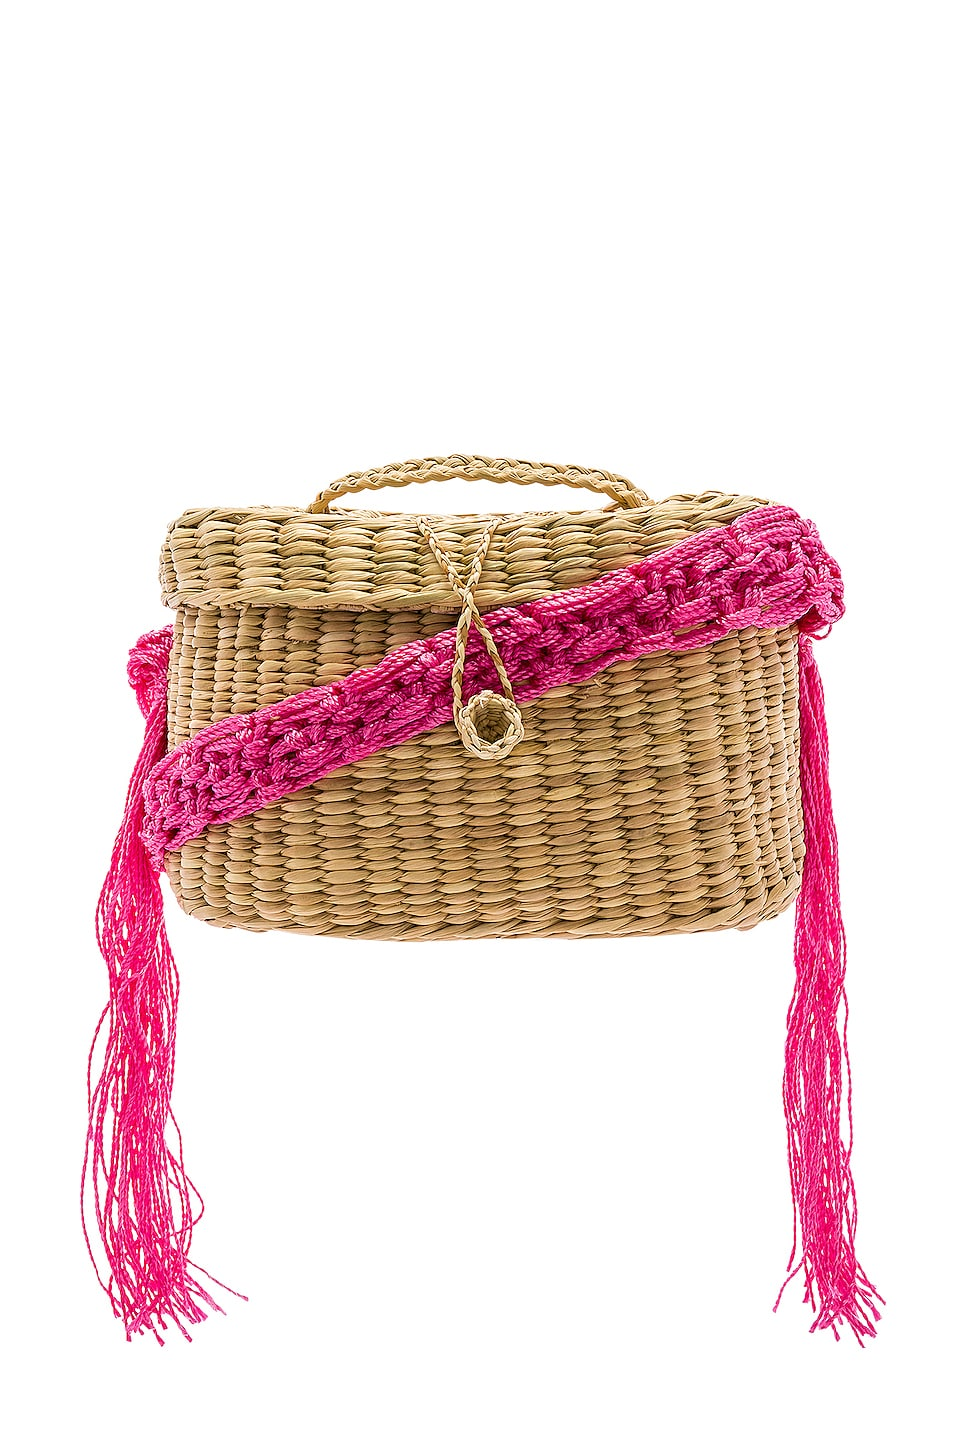 Nannacay Kiki Small Macrame Strap Bag in Off White & Pink